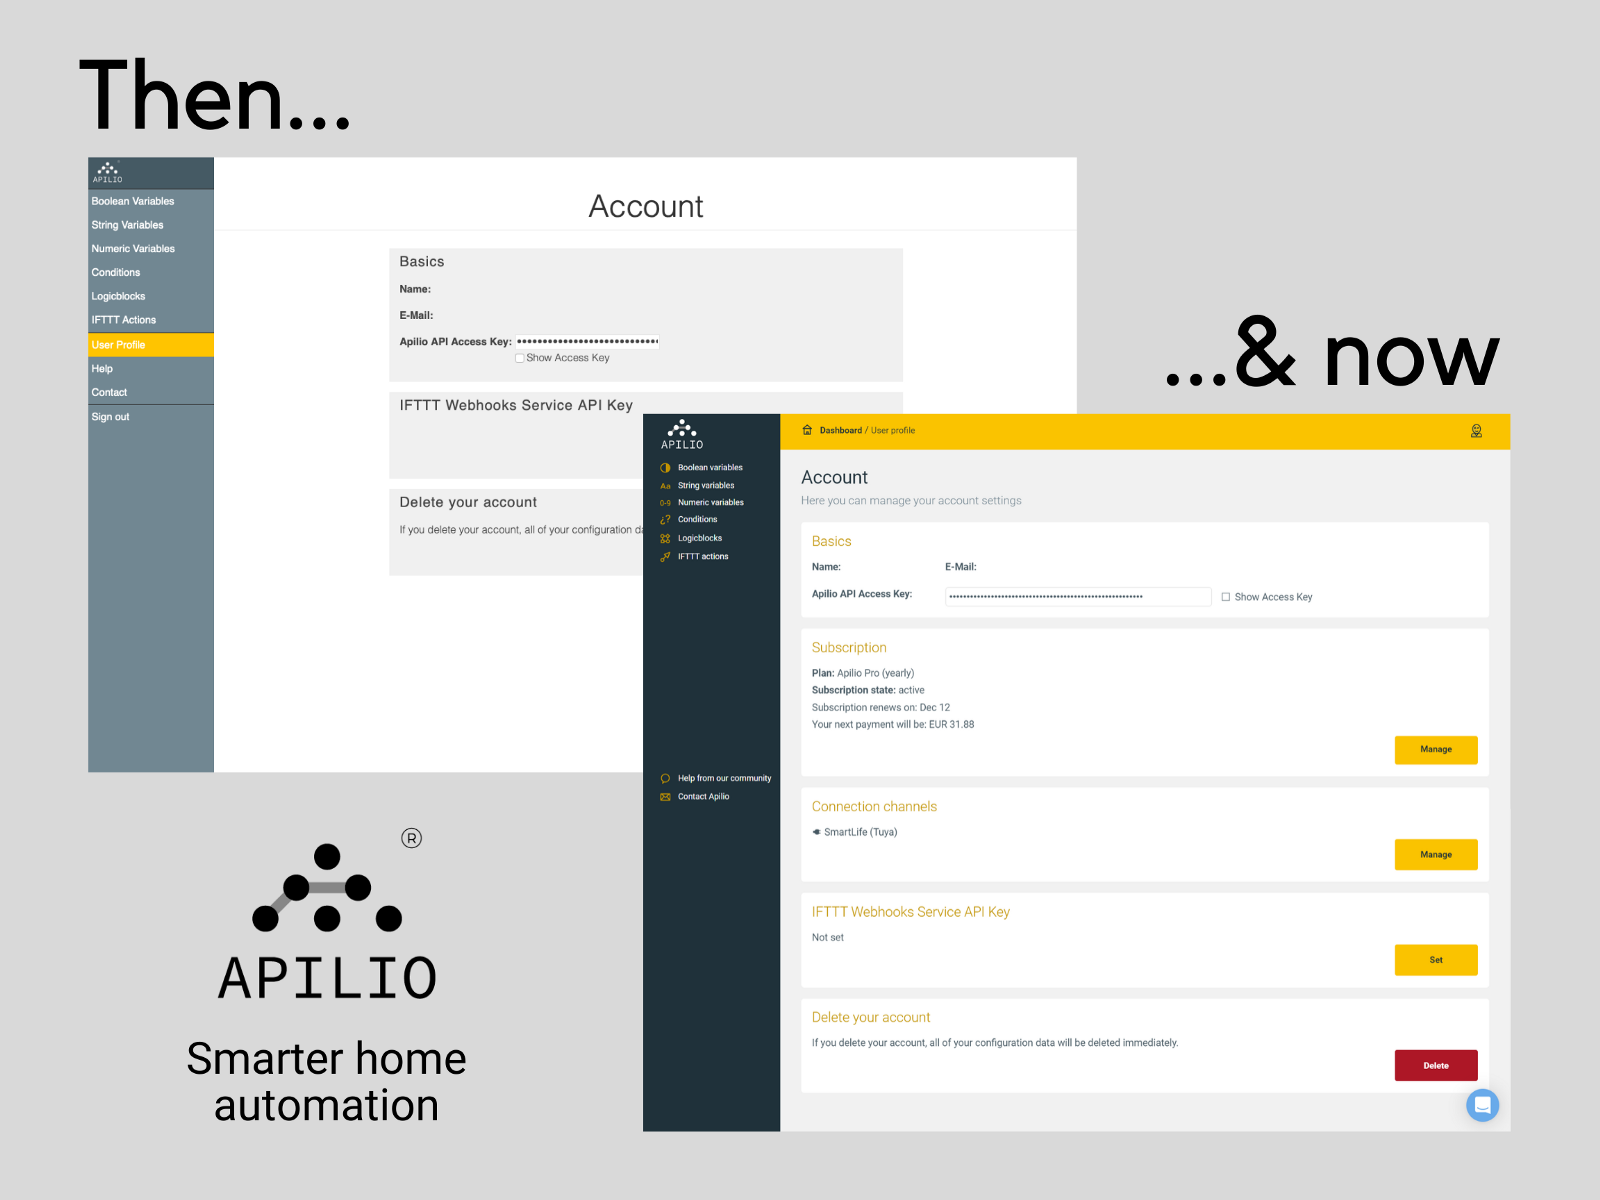 Comparison of an earlier version of the Apilio UI with the current looks.